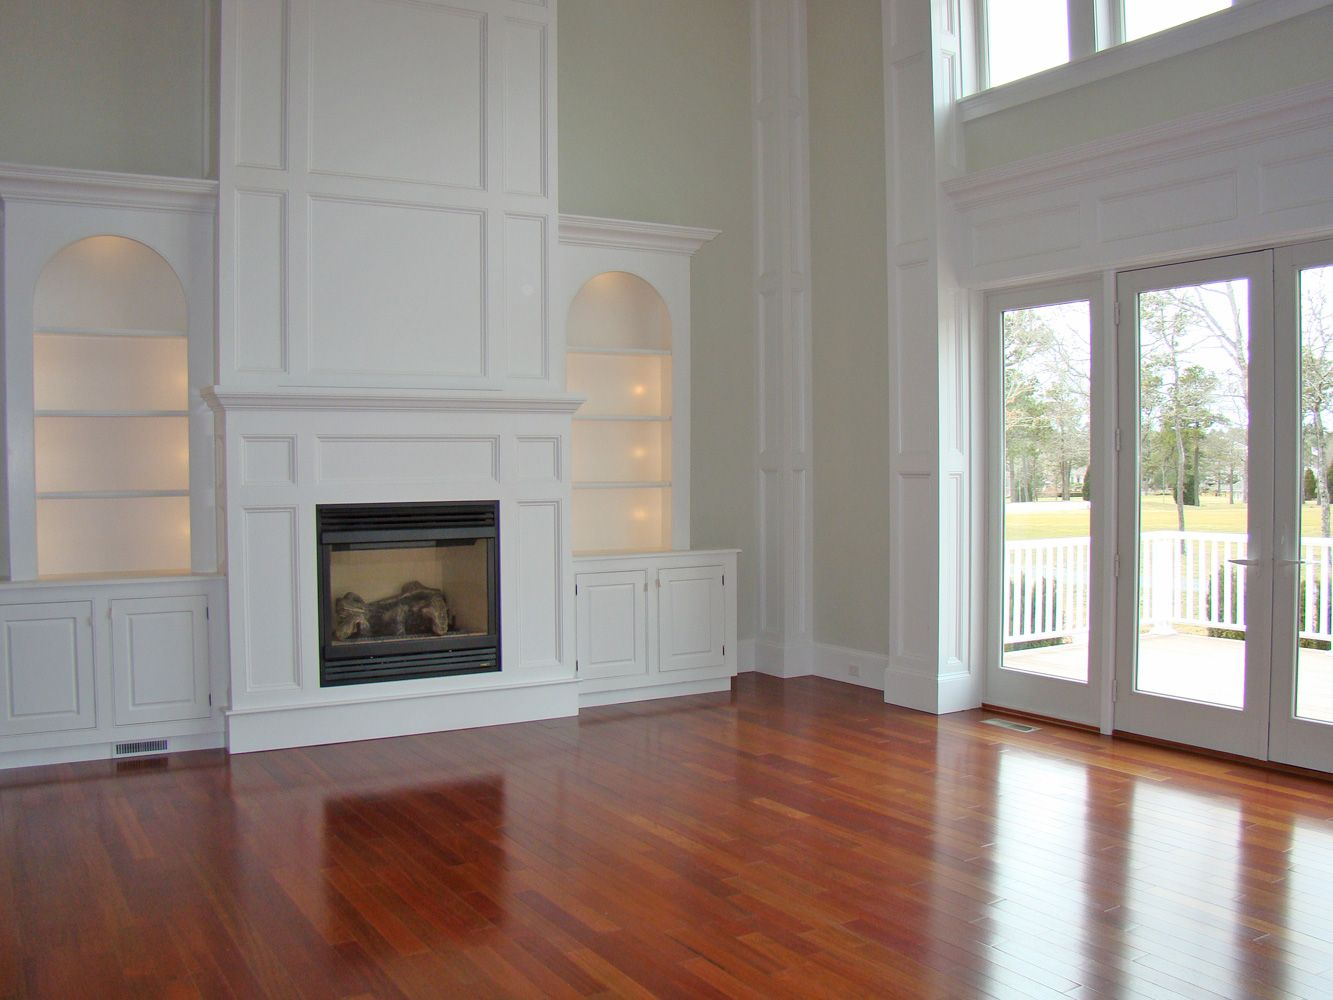 Wood floors large windows built in wall shelves fire place yes